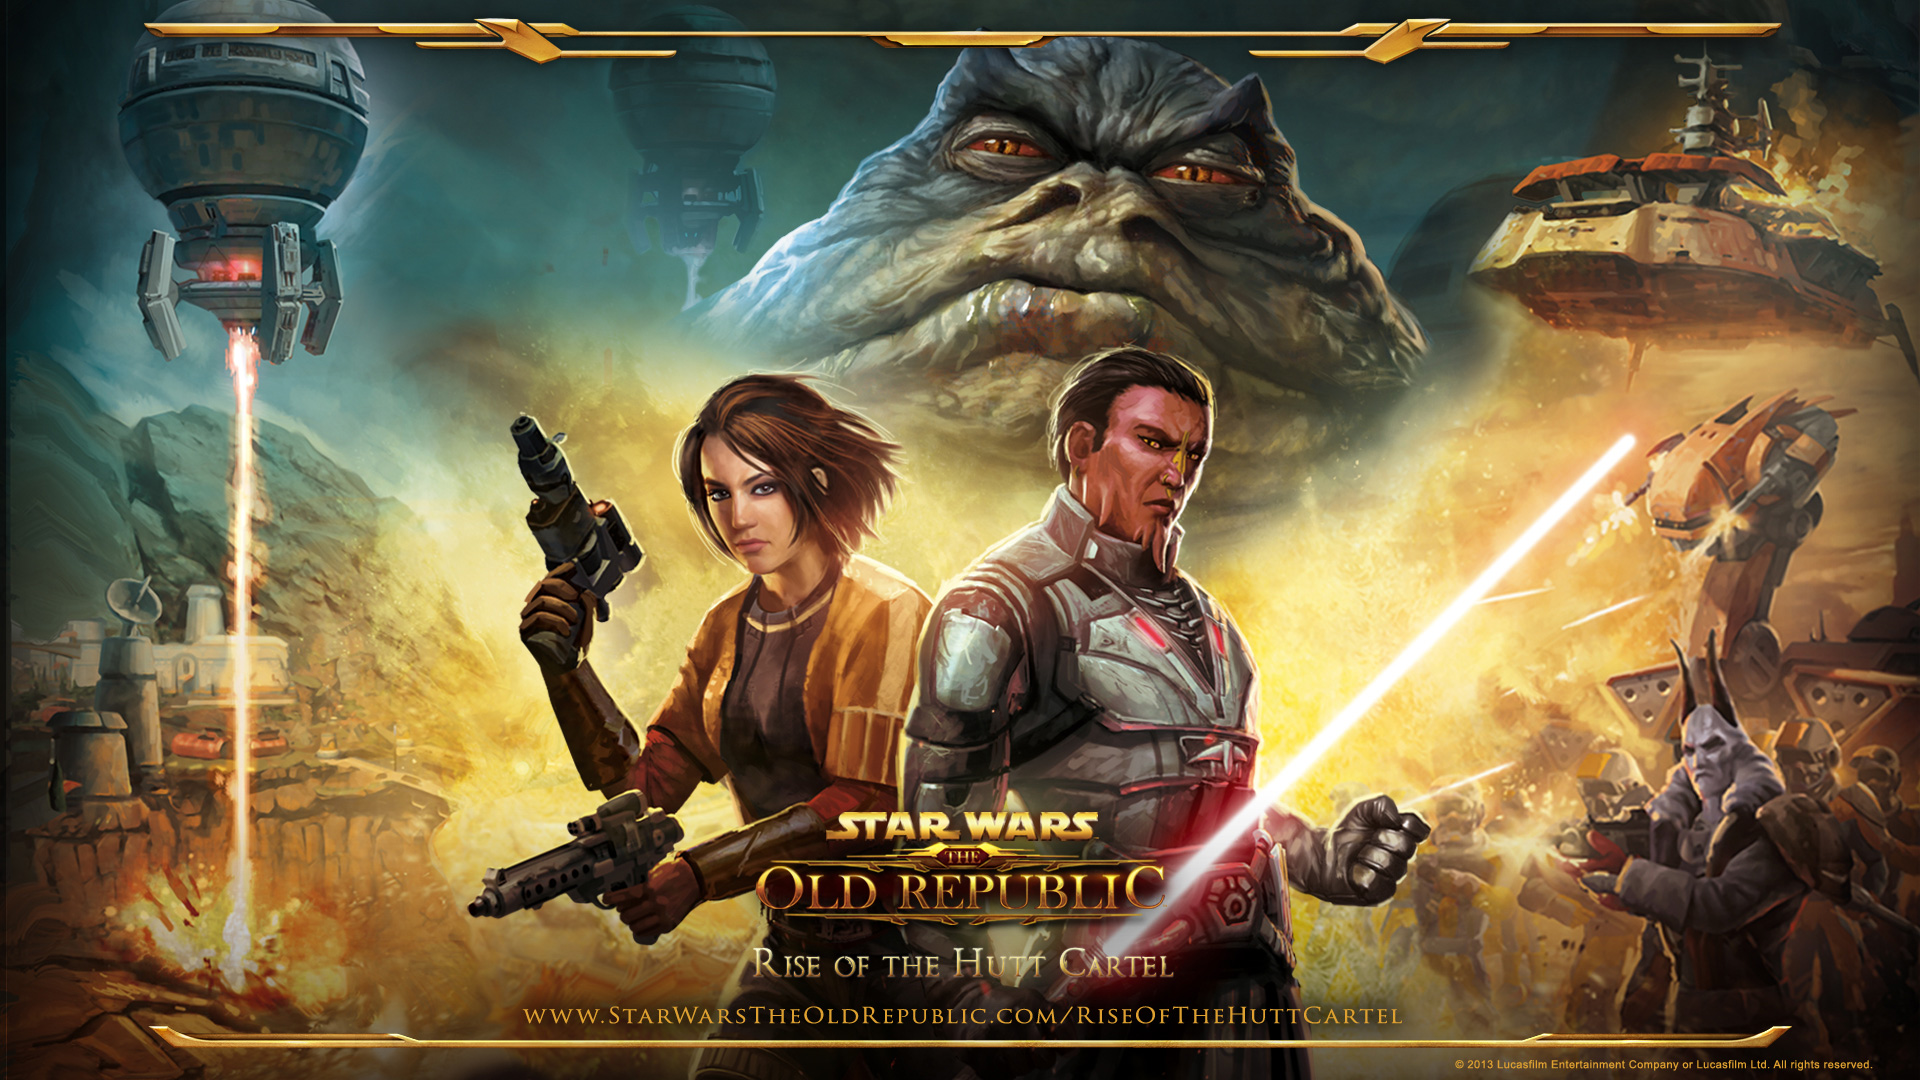 Star wars the old republic rise of the hutt cartel wookieepedia star wars the old republic rise of the hutt cartel wookieepedia fandom powered by wikia fandeluxe Image collections